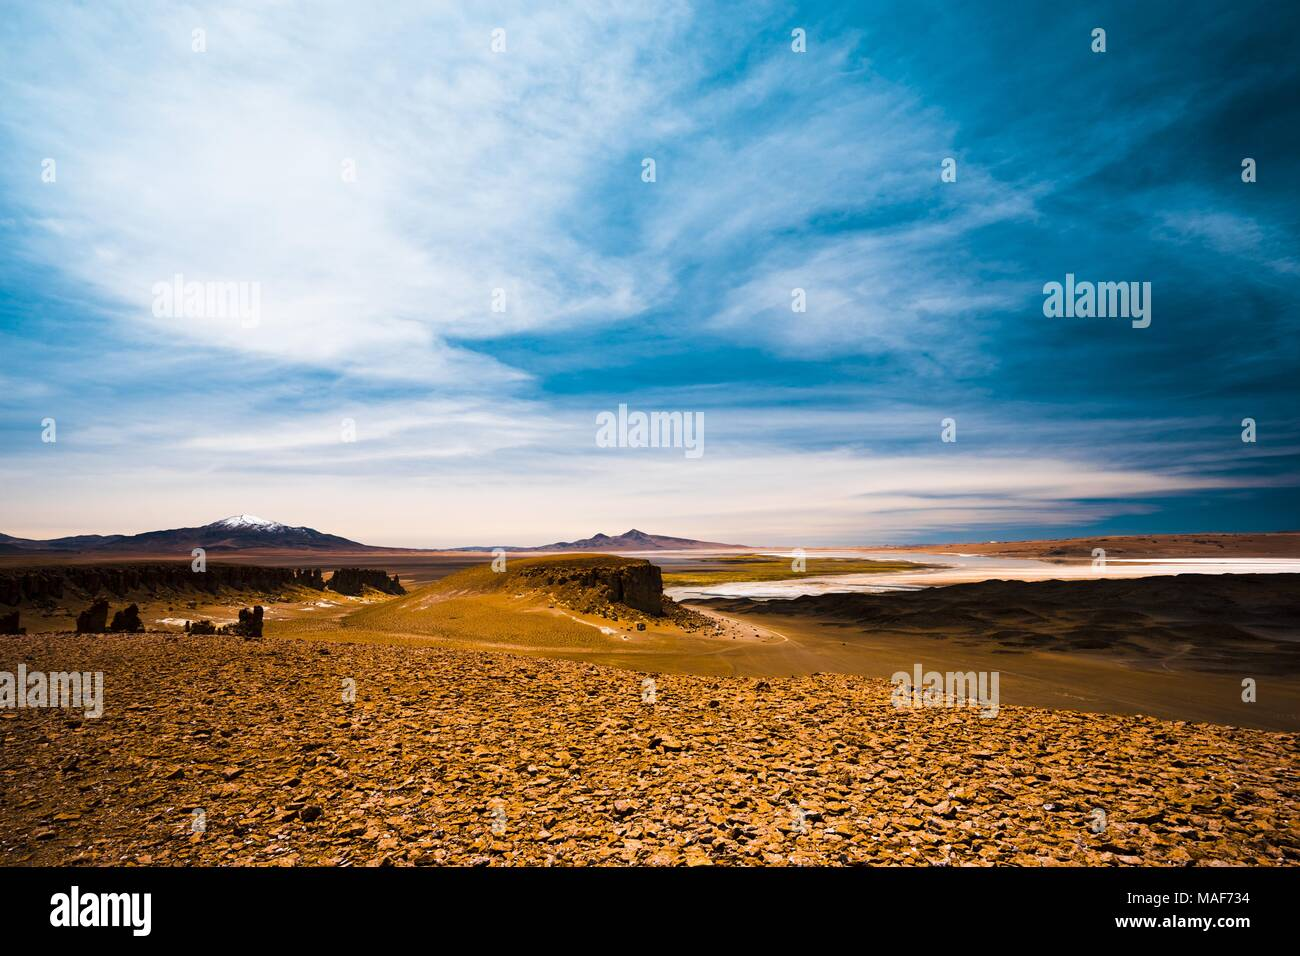 Salar de Tara in Chile, a tyical altiplano salt lake in the dry Atacama region - Stock Image